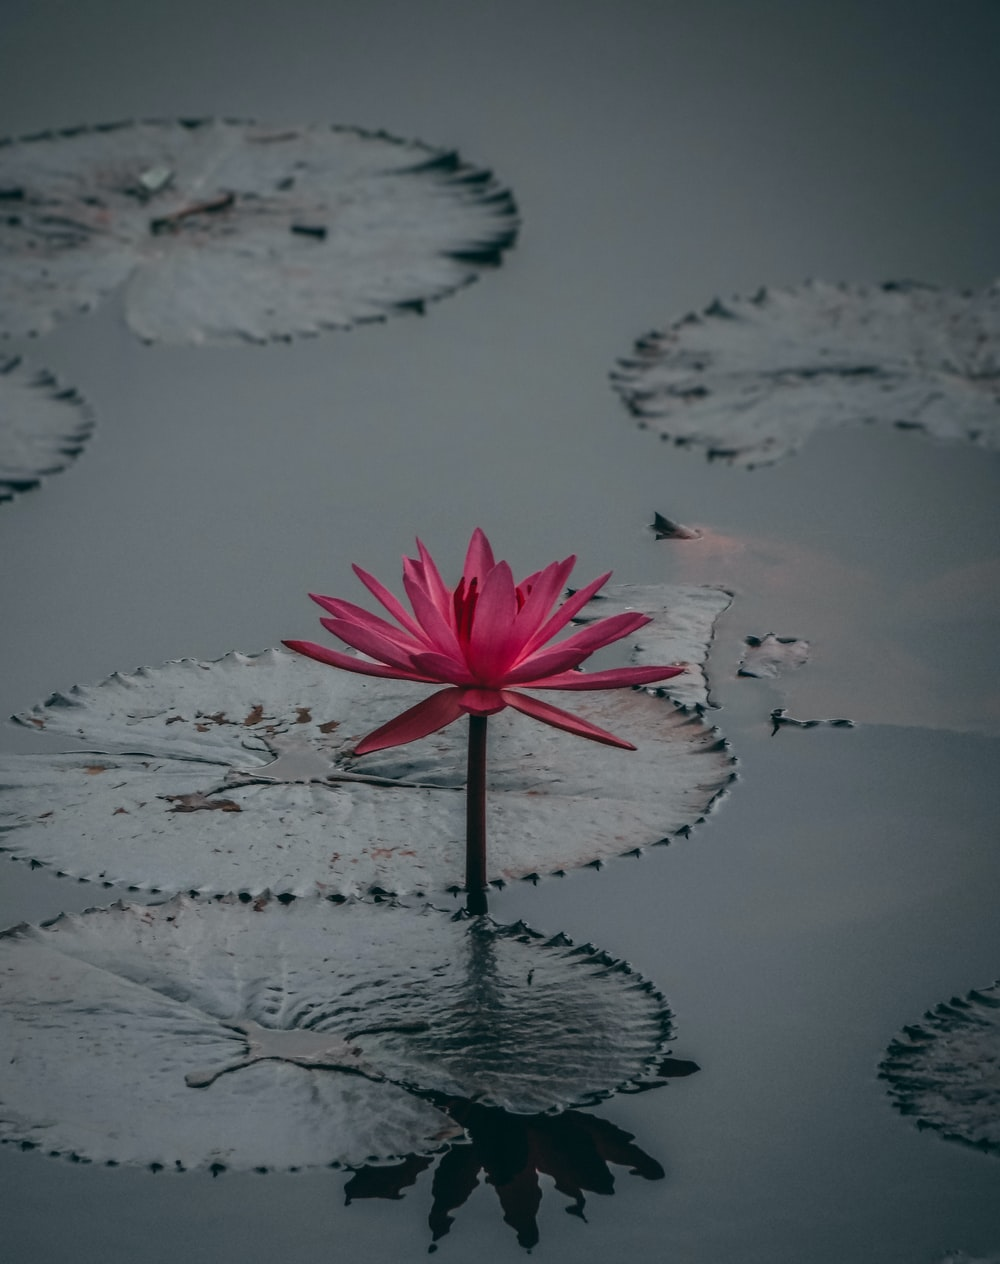 selective focus photography of pink water lily flower on body of water